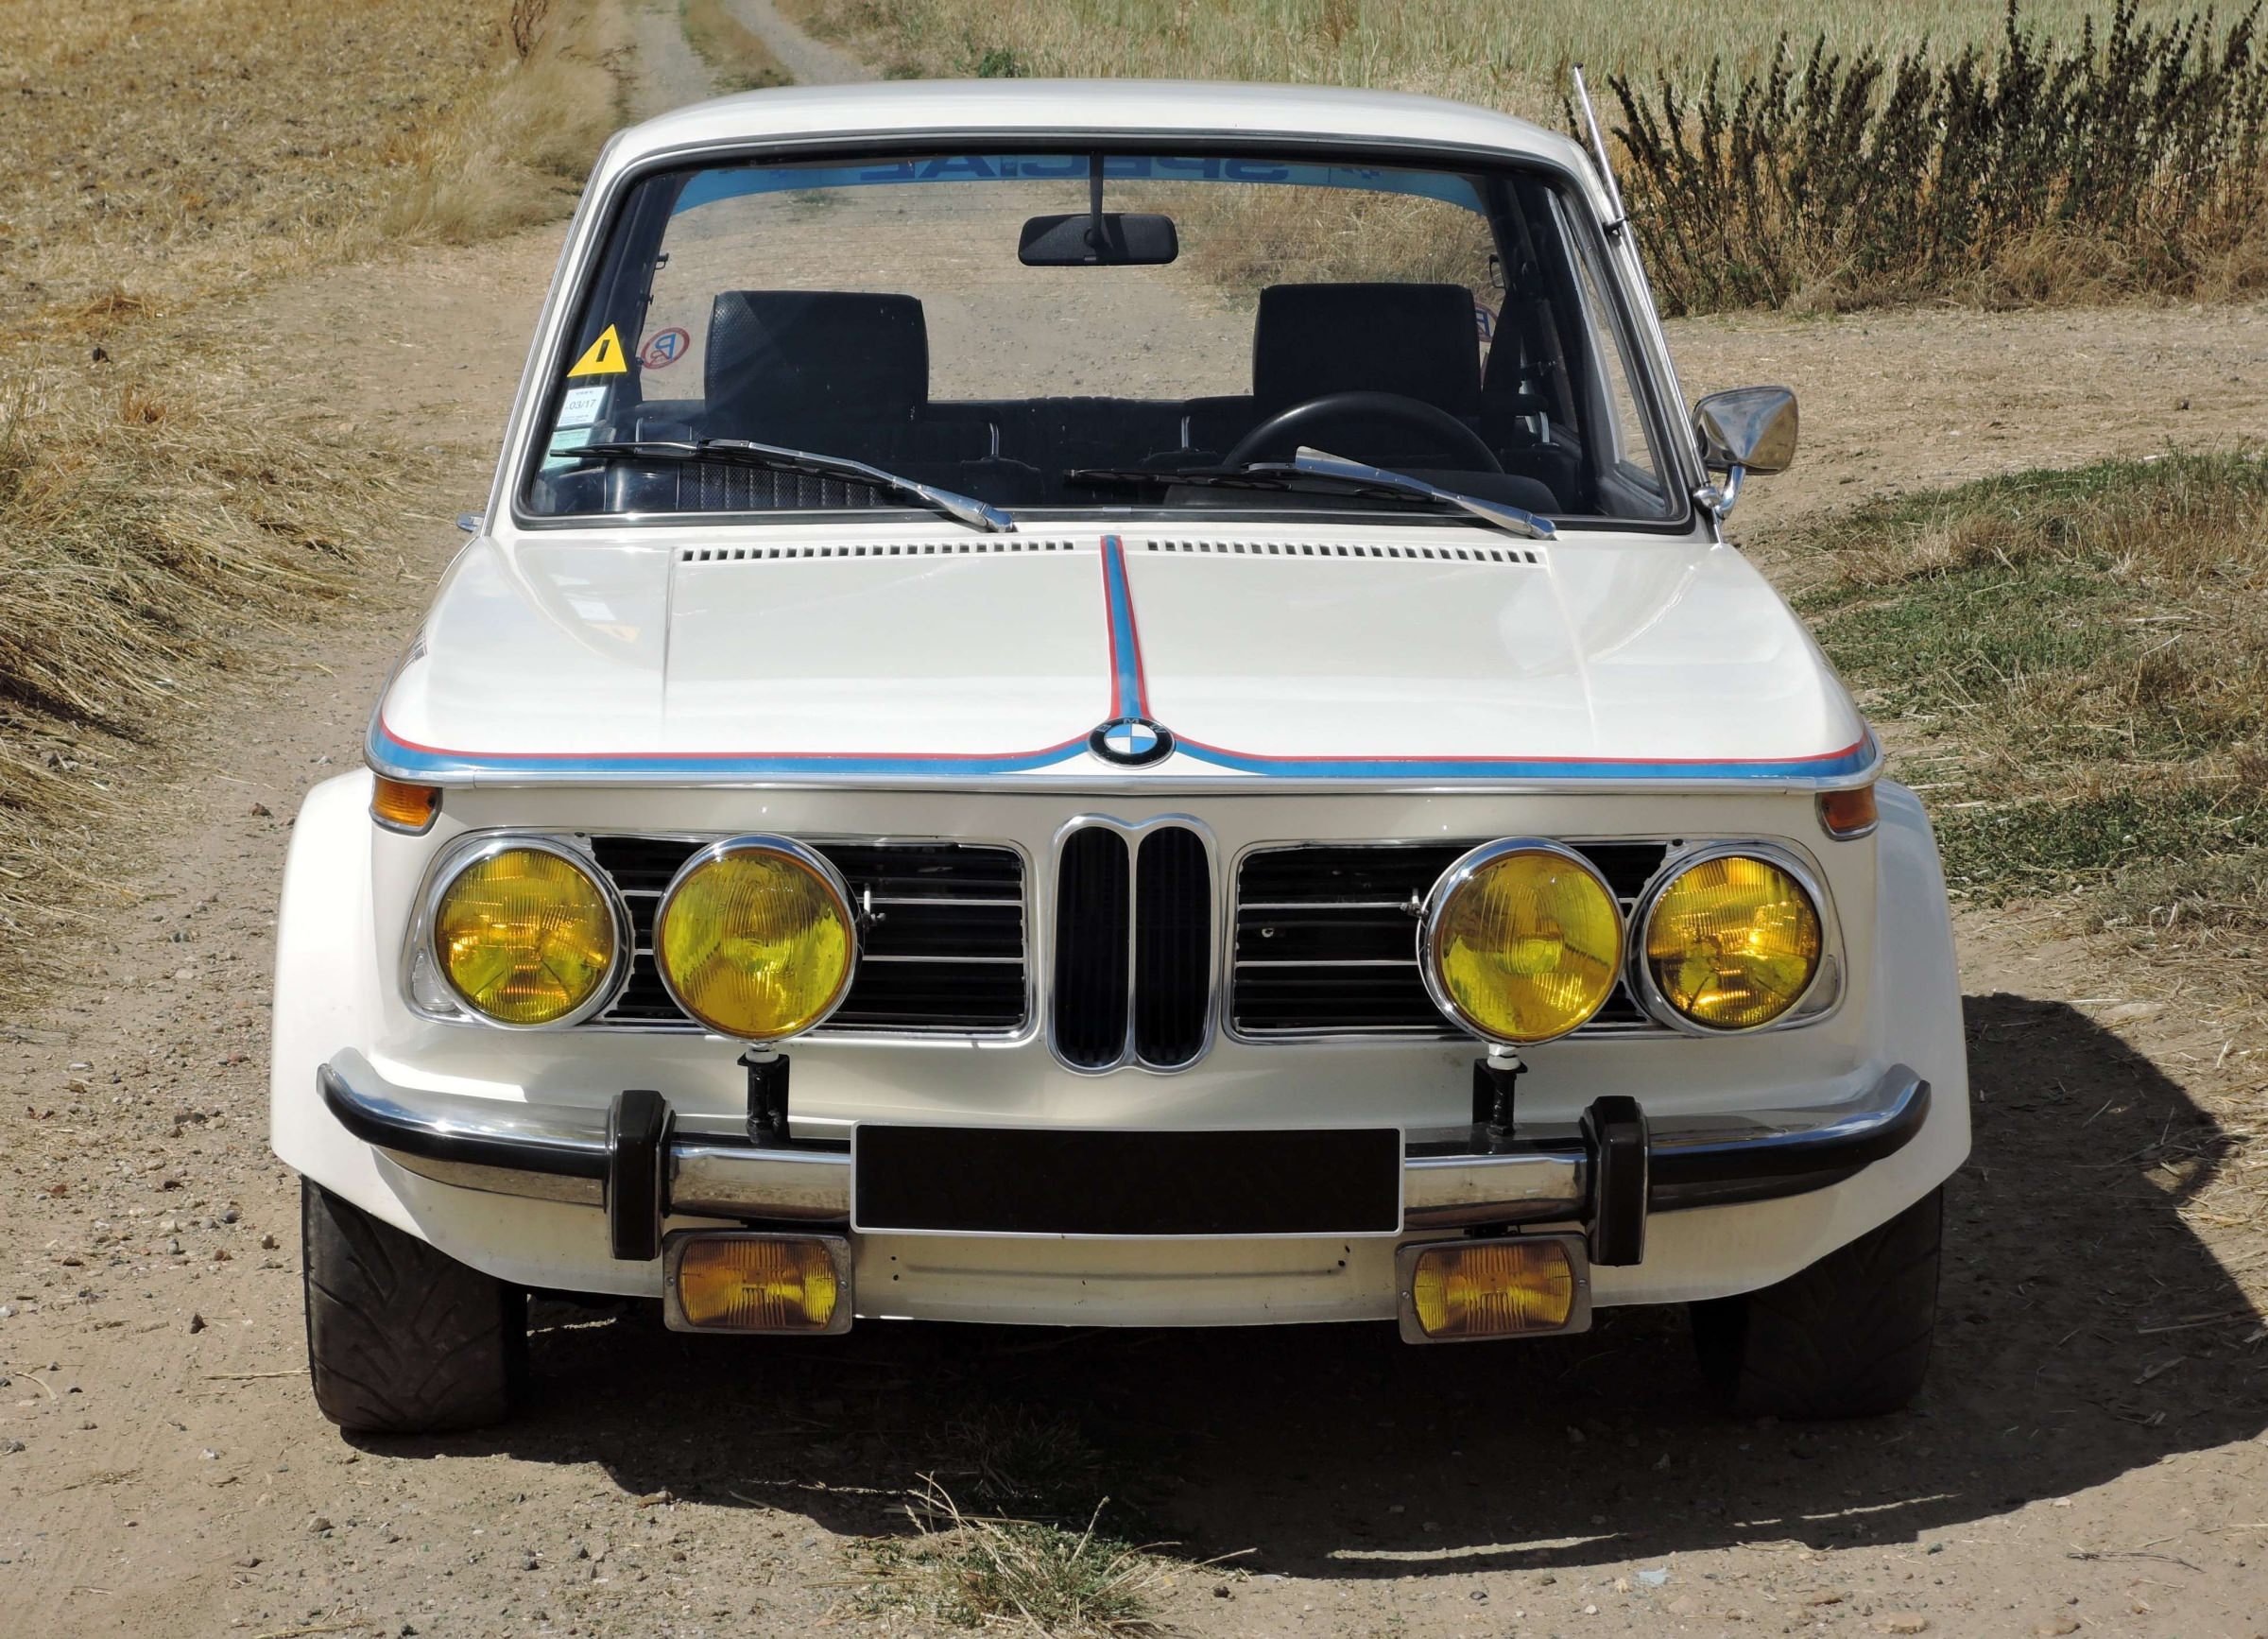 1971 Bmw 2002 Tii Specification Group 2 A French Built Racer